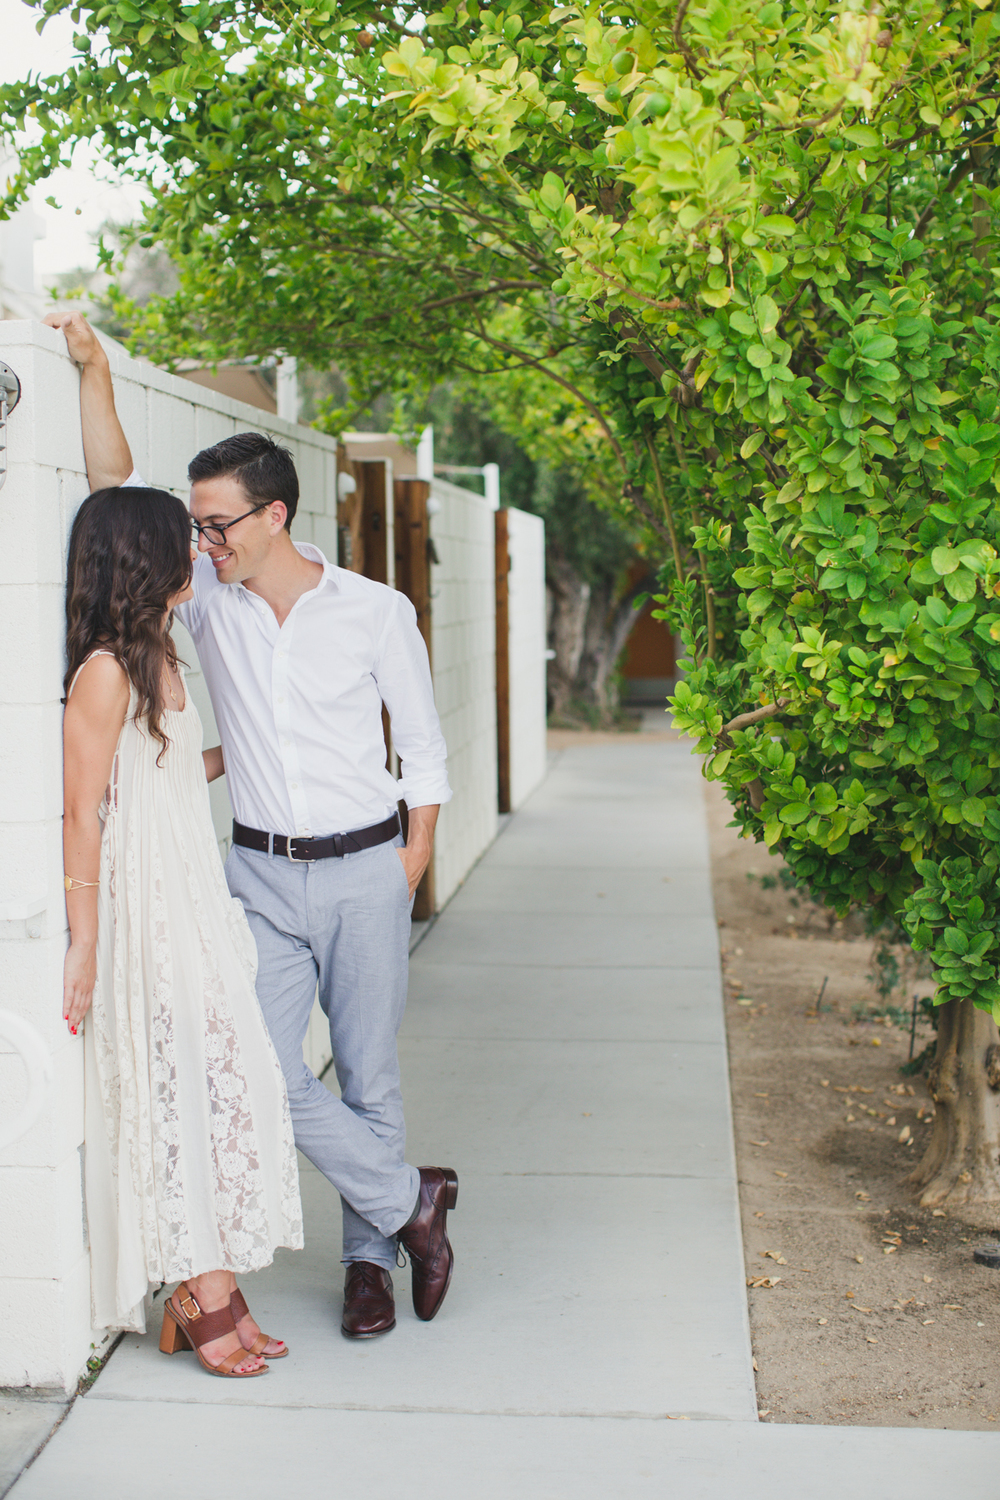 All_Days_Wonder_Palm_Springs_Engagement-42.jpg